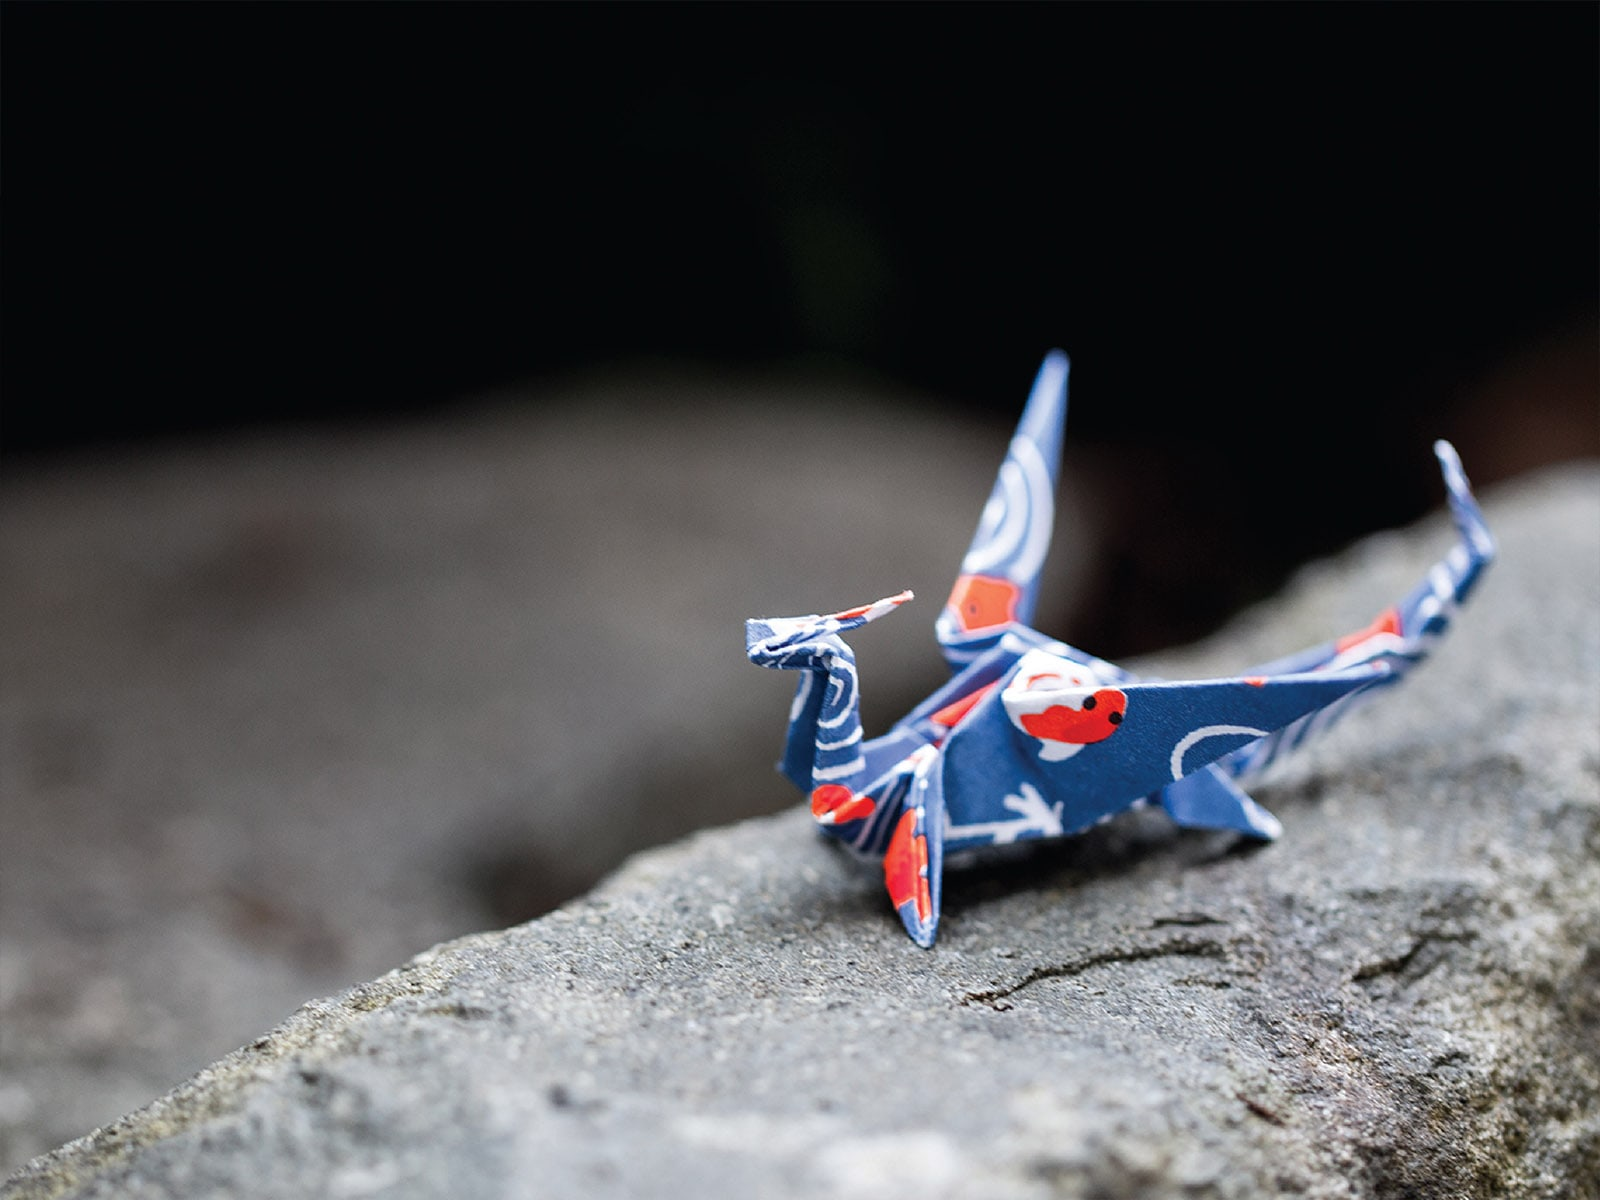 A dragon crafted from blue origami paper sitting on a rock